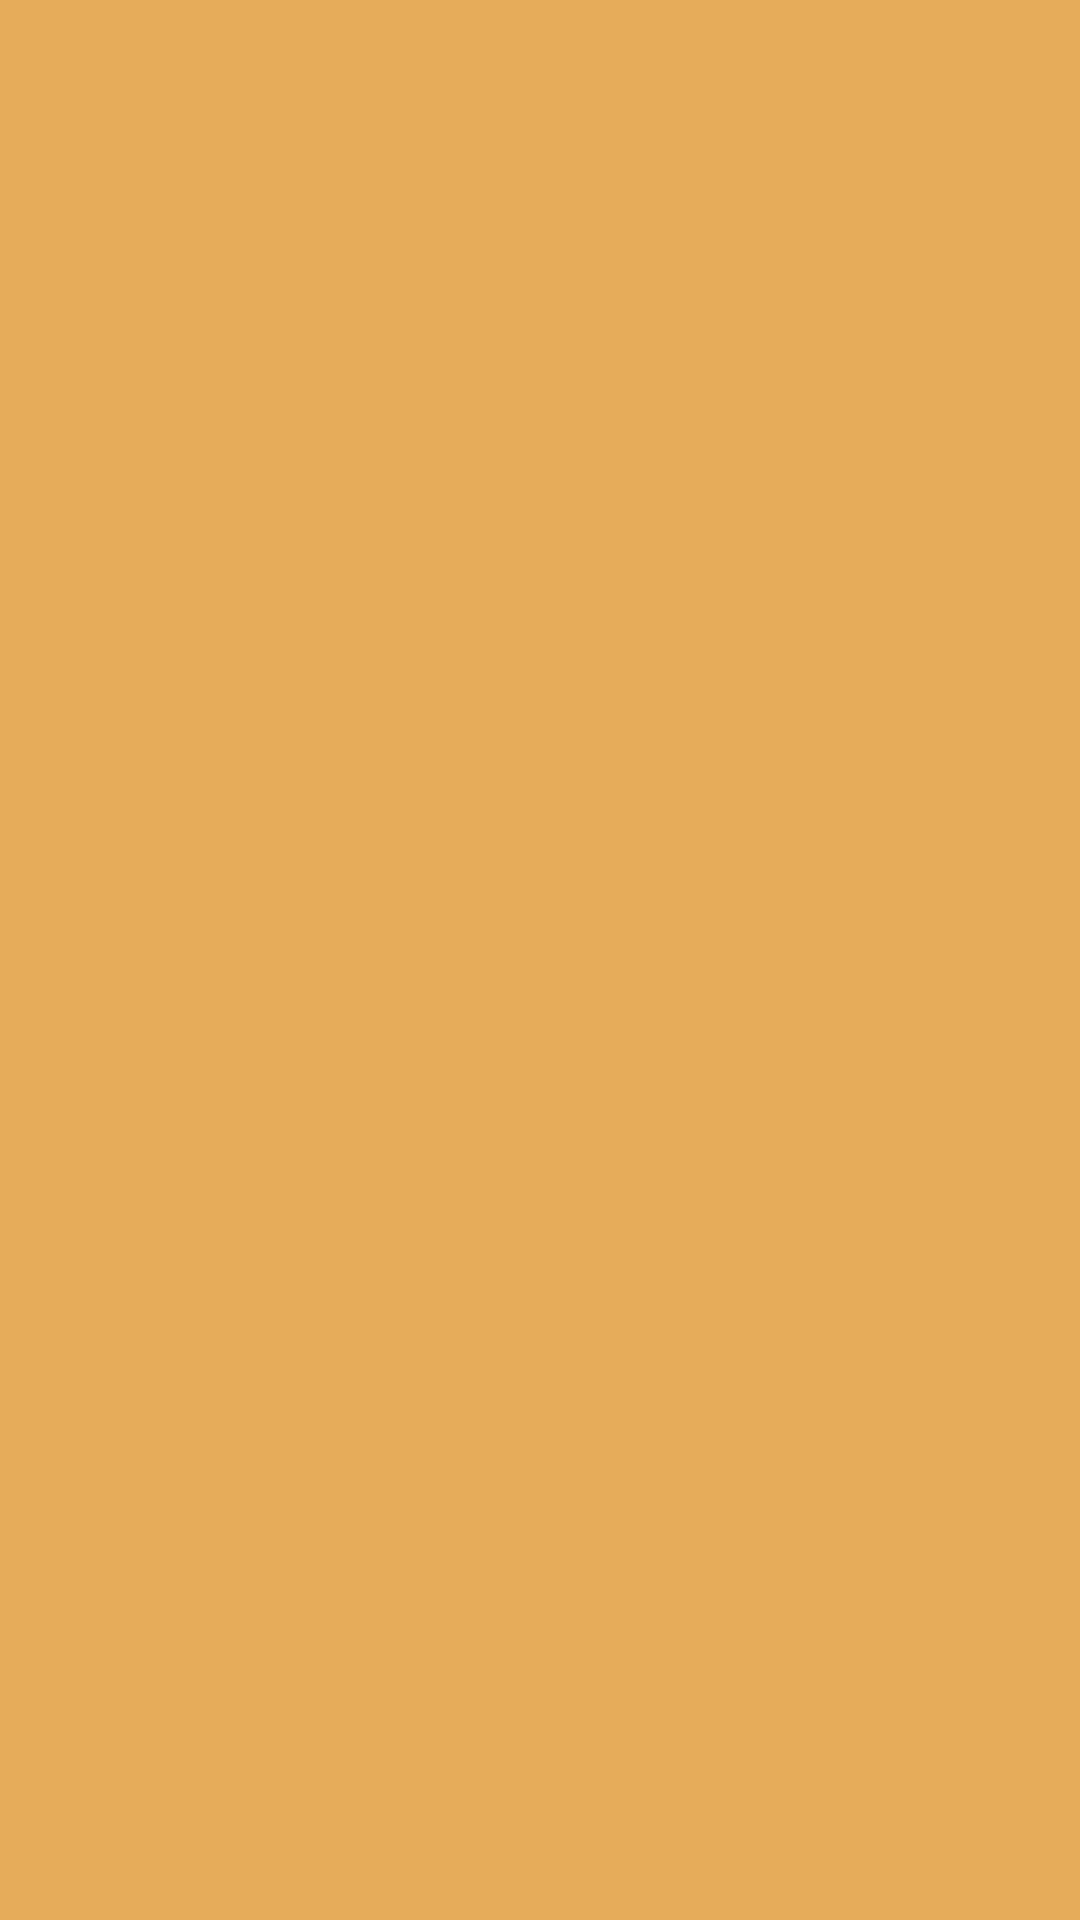 1080x1920 Sunray Solid Color Background